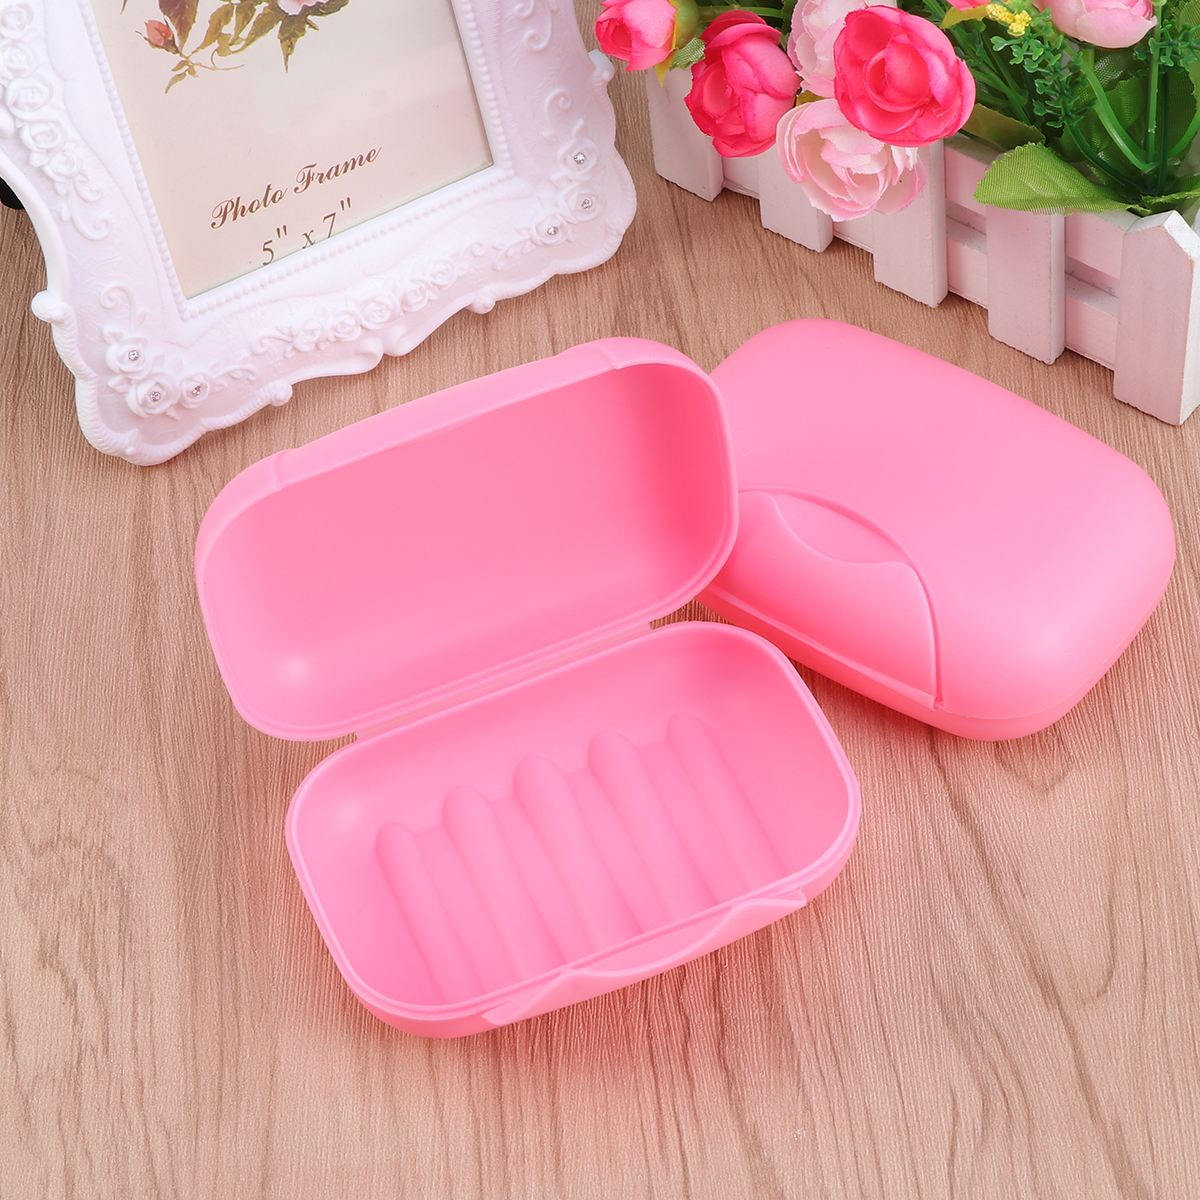 Creative Portable Soap Dish Box Soap Holder Container Traveling Sealed Soap Case Size L (Pink,Black)